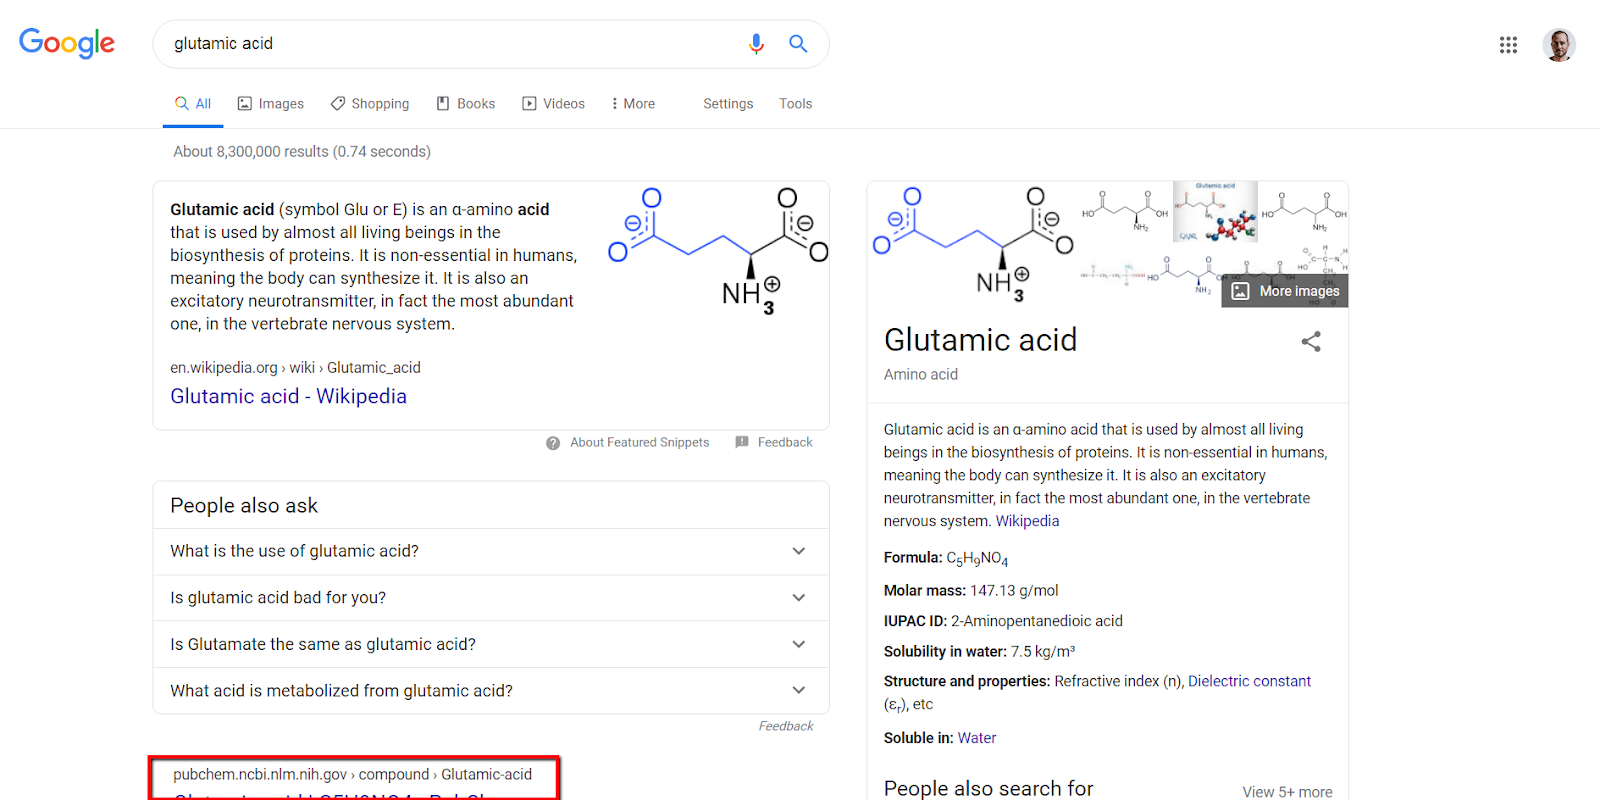 example of second result barely visible below featured snippet on desktop.